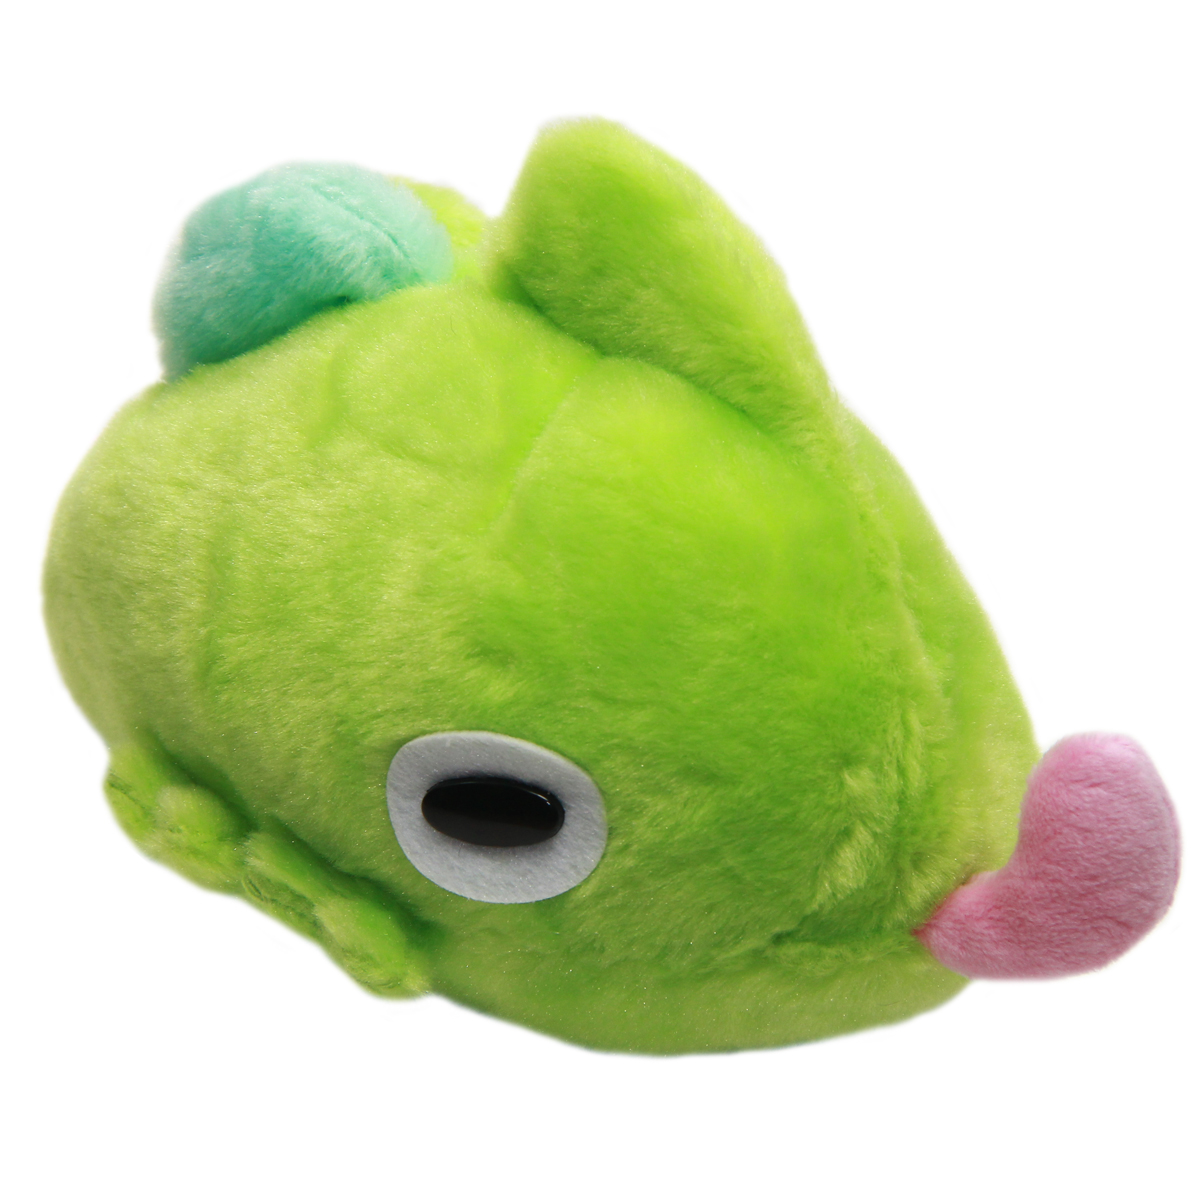 Chameleon Plushie Super Soft Squishy Stuffed Animal Toy Green Size 7 Inches